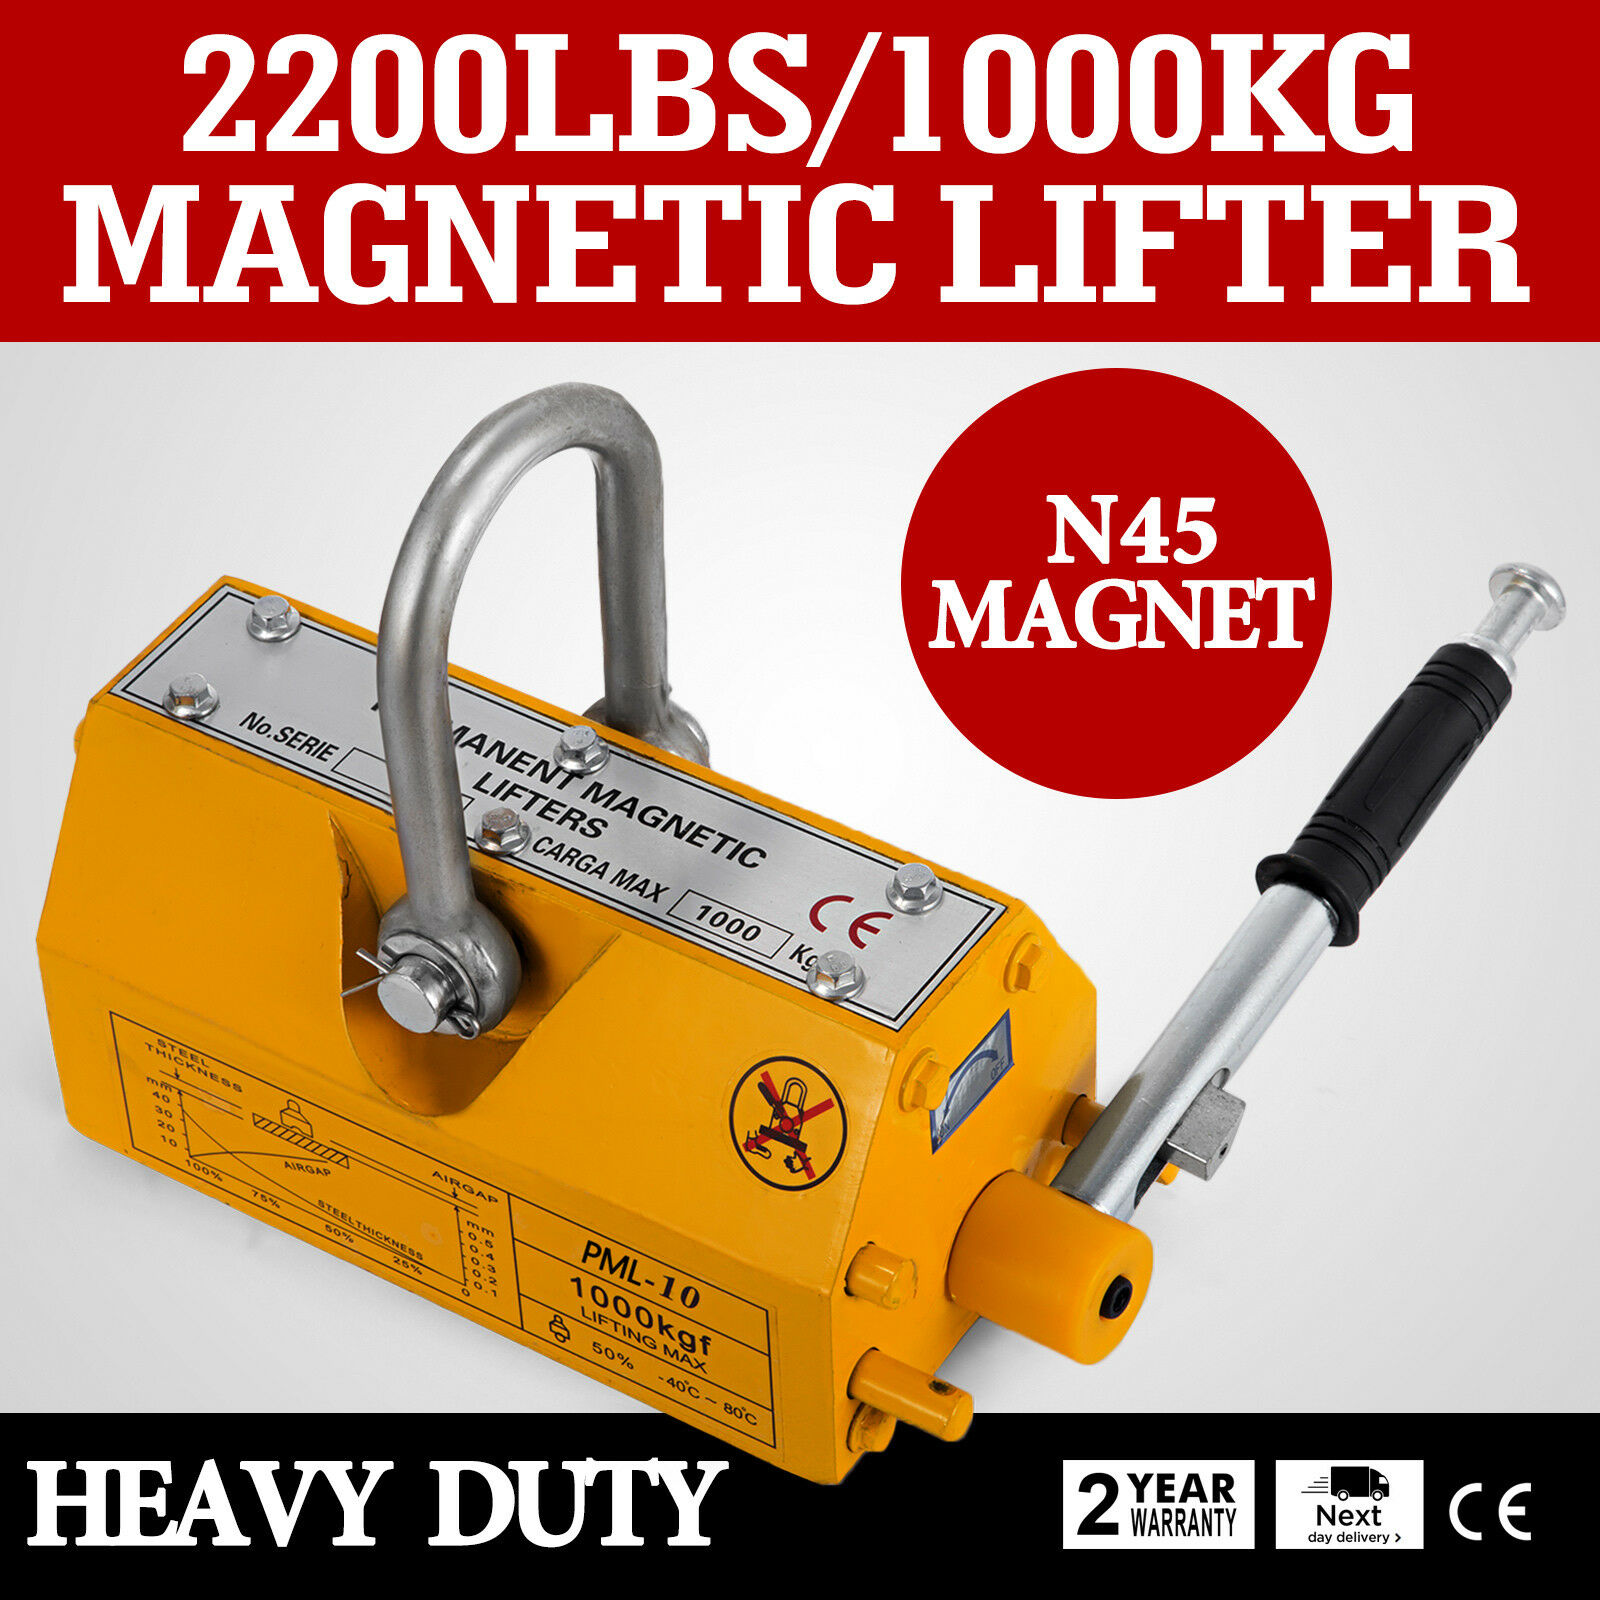 1000KG / 2200LBS Steel Magnetic Lifter Heavy Duty Crane Hoist Lifting Magnet